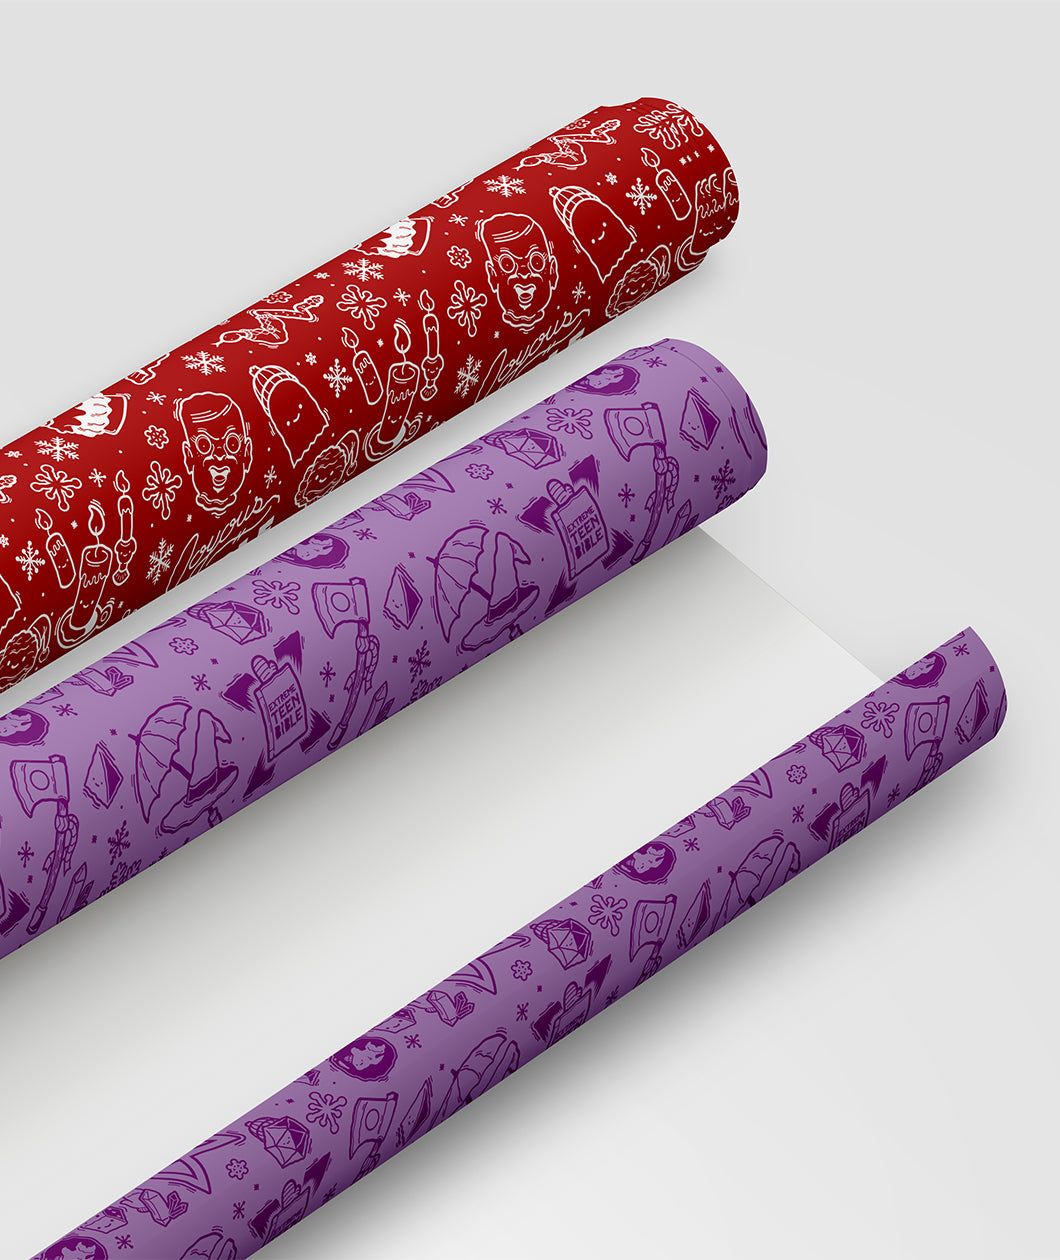 Candlenights Wrapping Paper